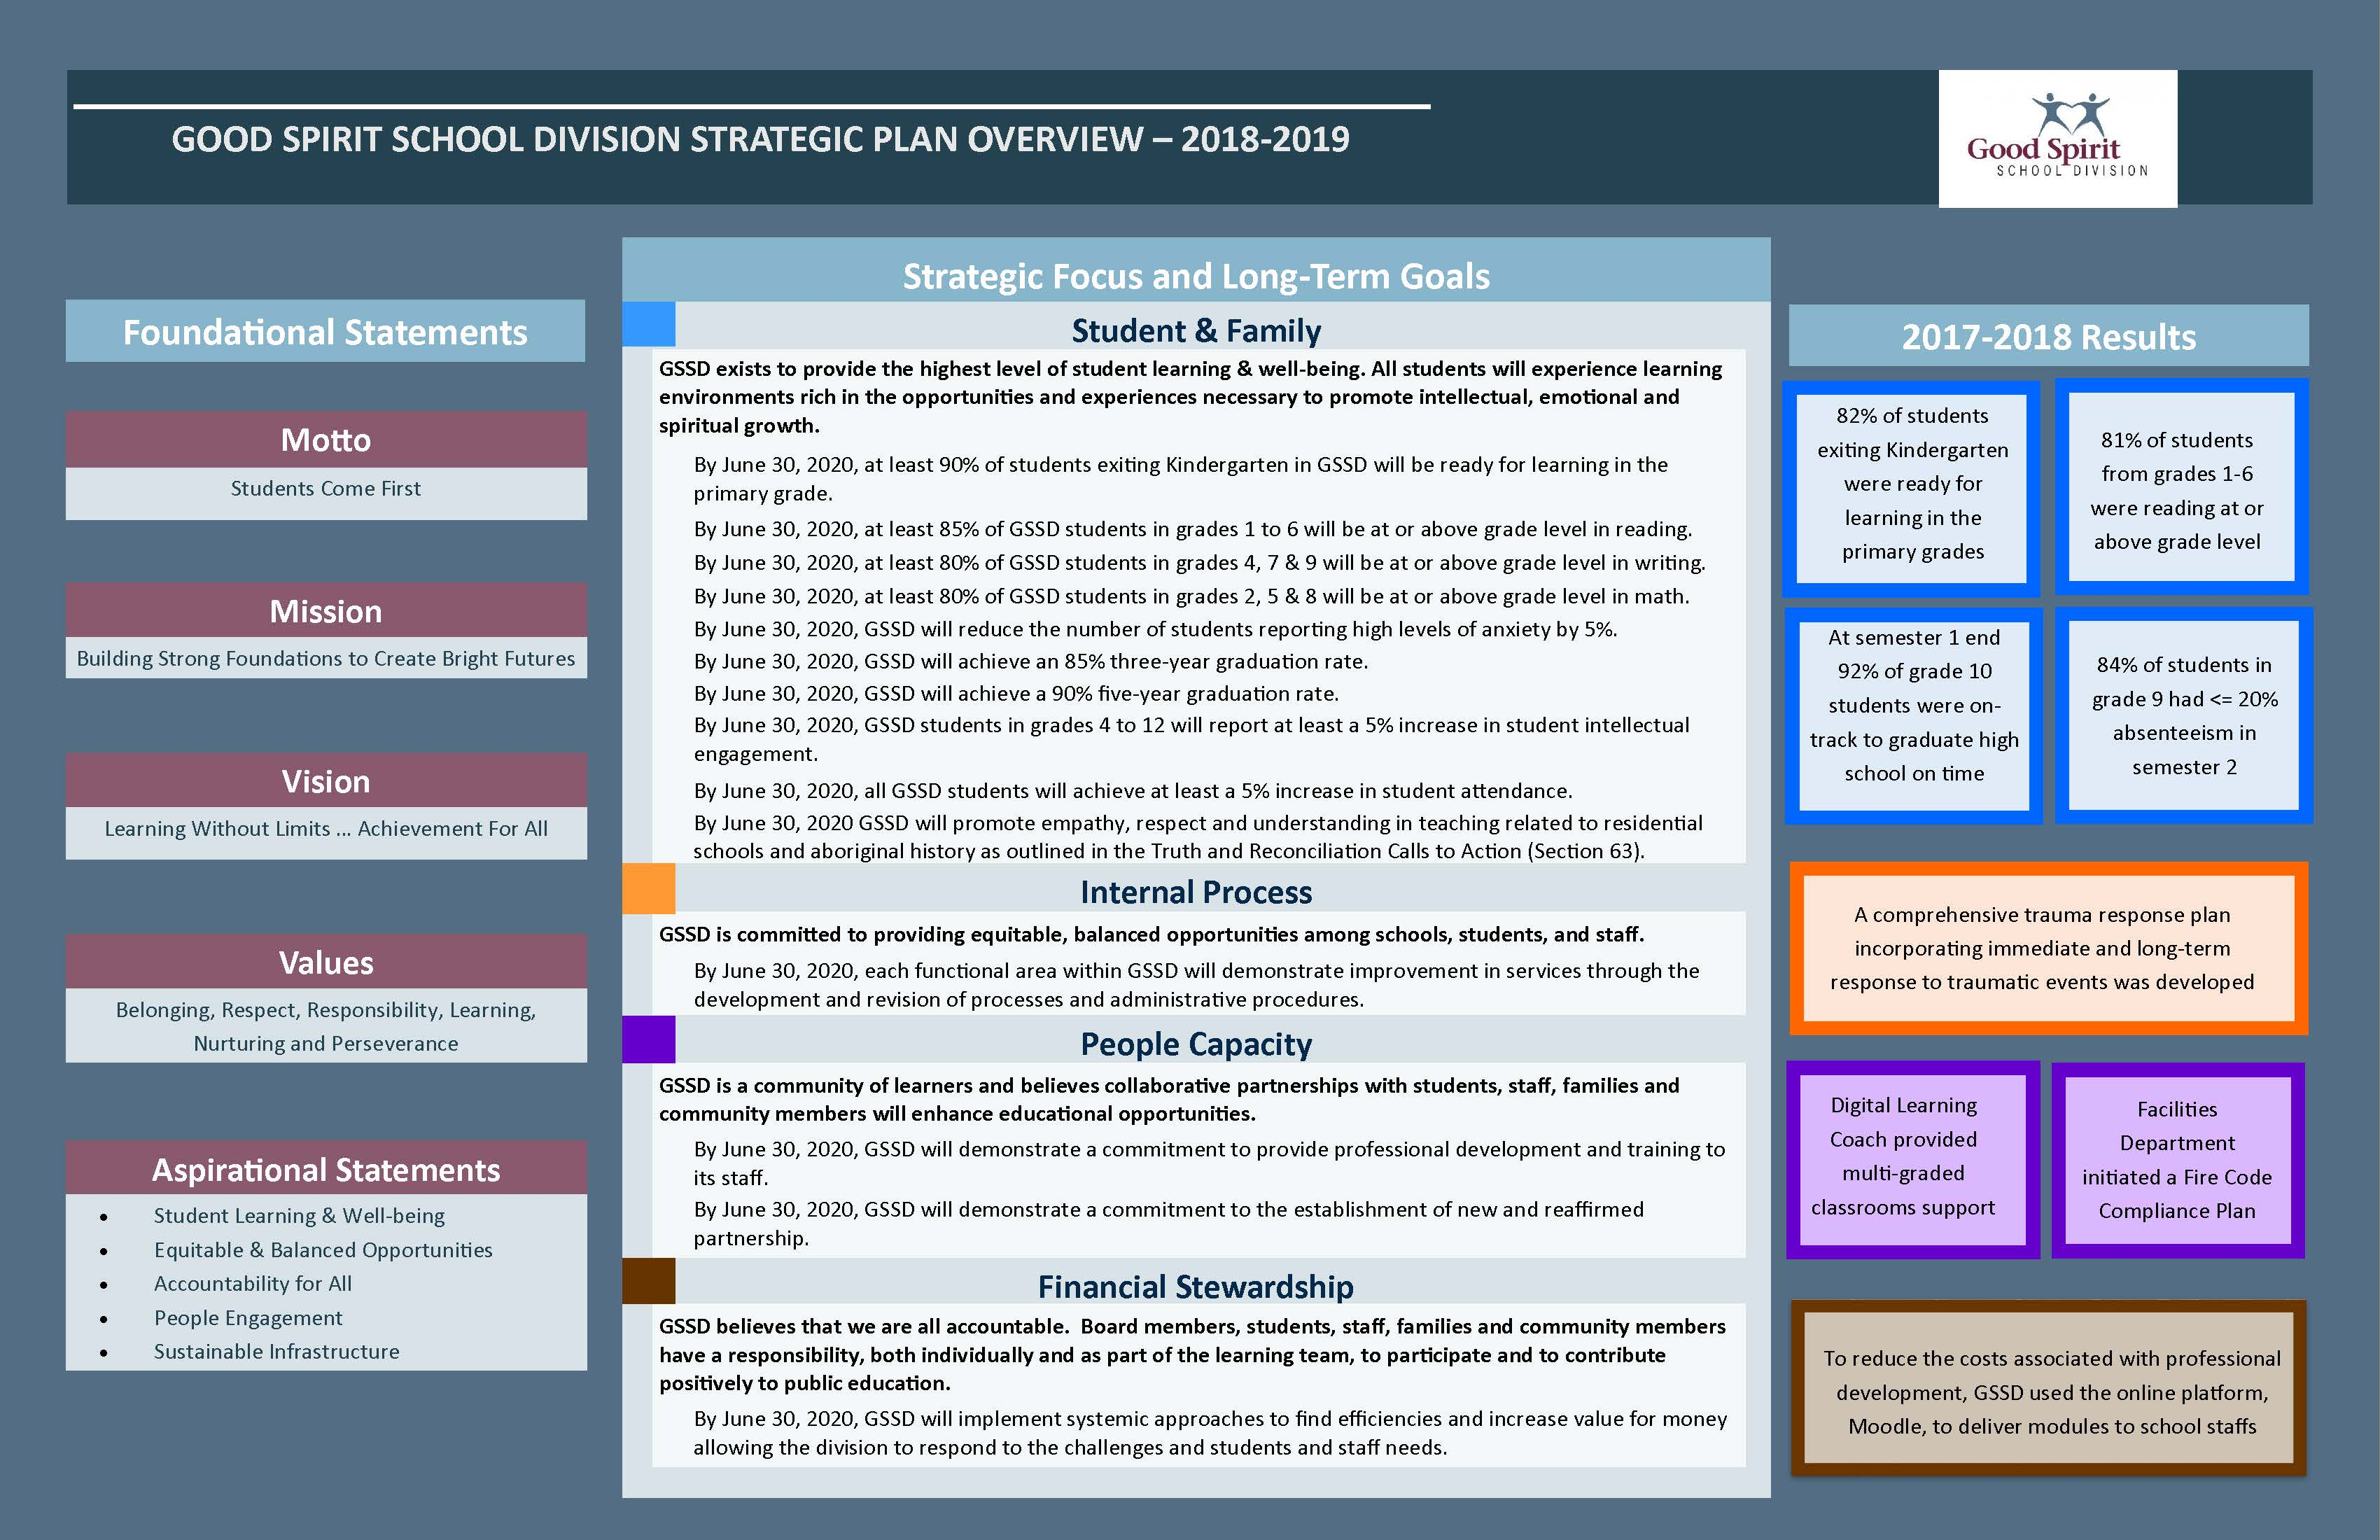 2018-19 Strategic Plan Overview.jpg